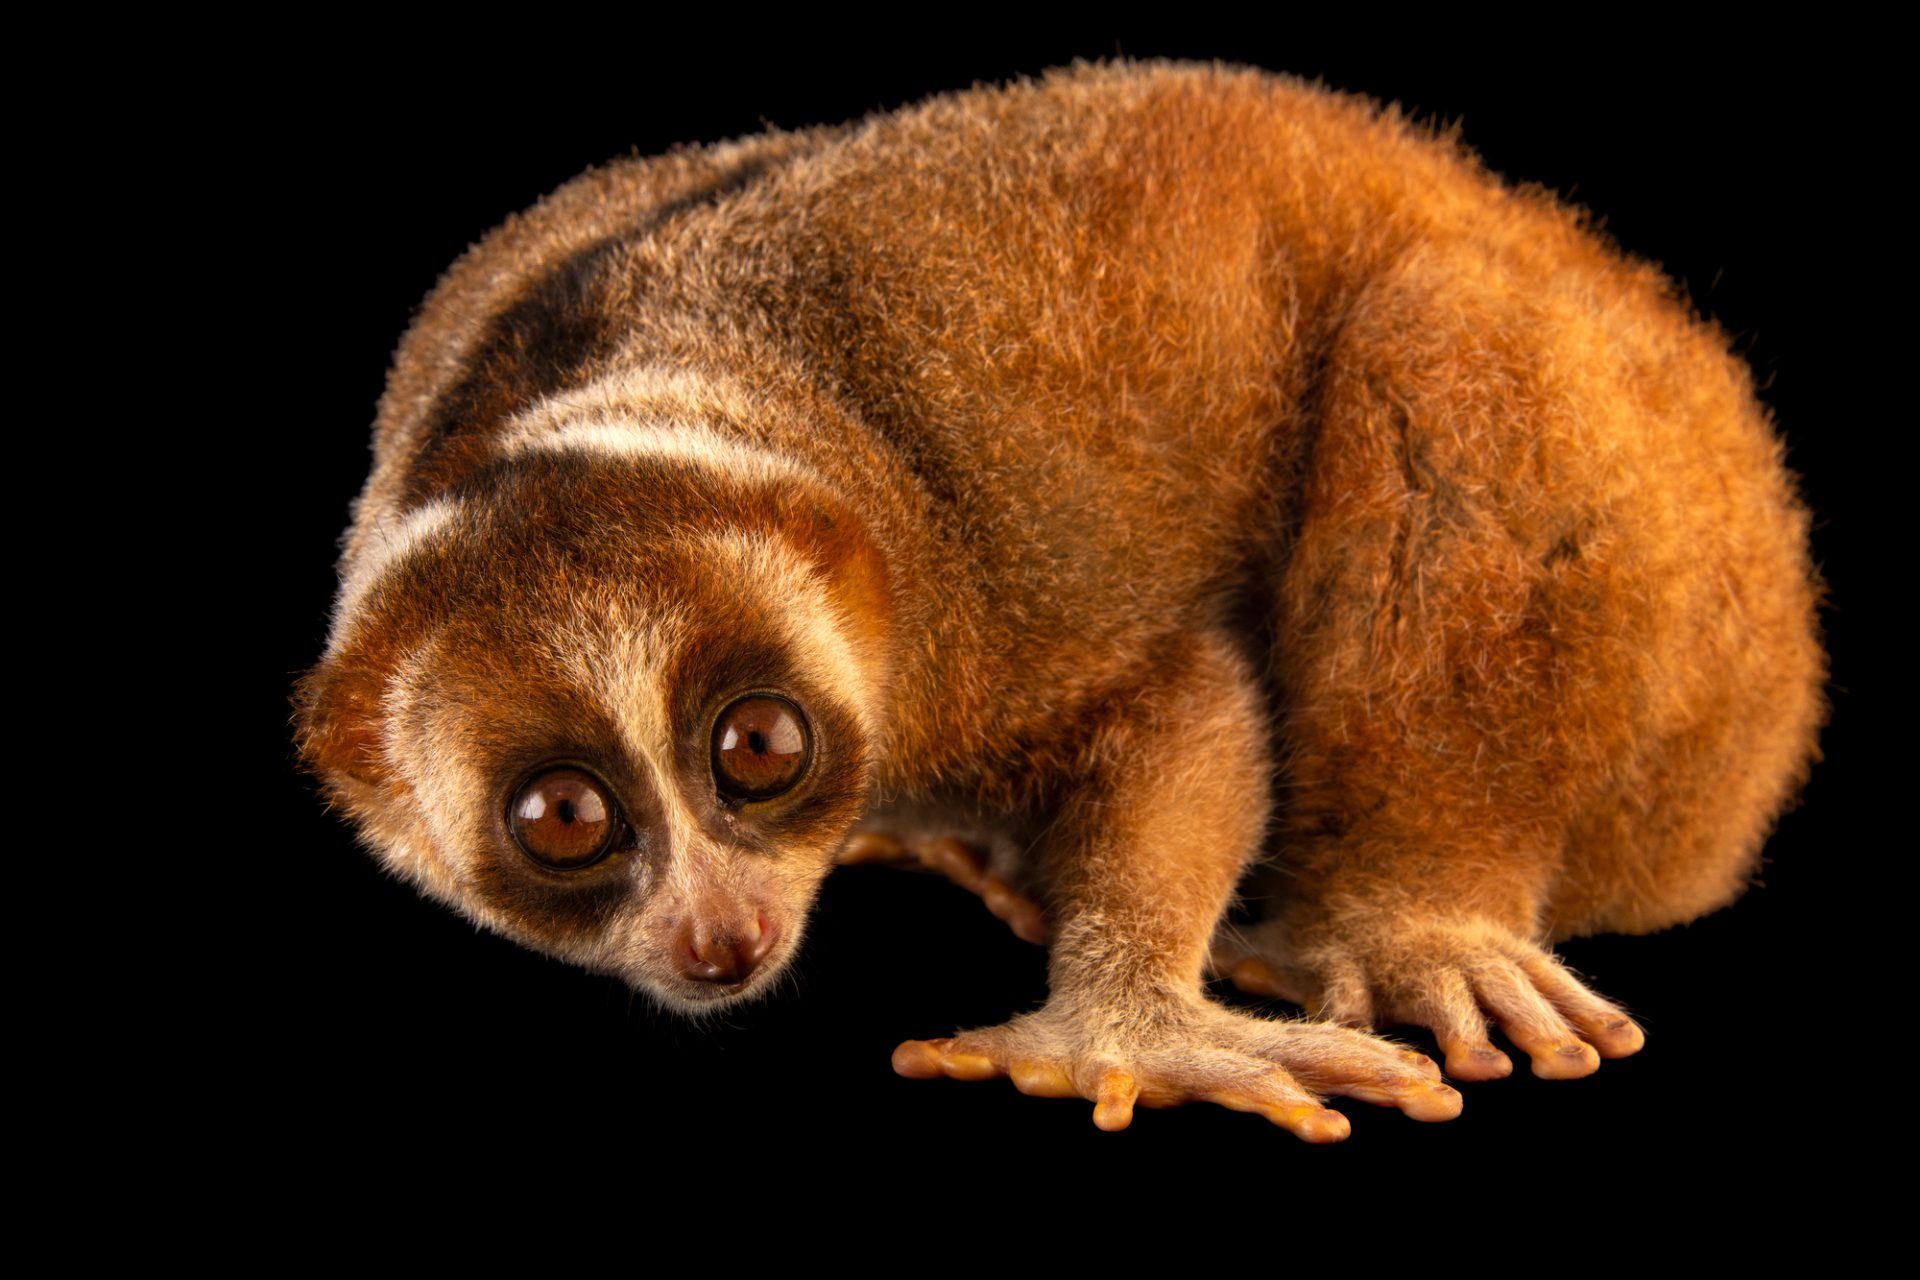 Photo: Floppy, the female Bengal slow loris (Nycticebus bengalensis) at the Singapore Zoo. This species is listed as vulnerable by IUCN.